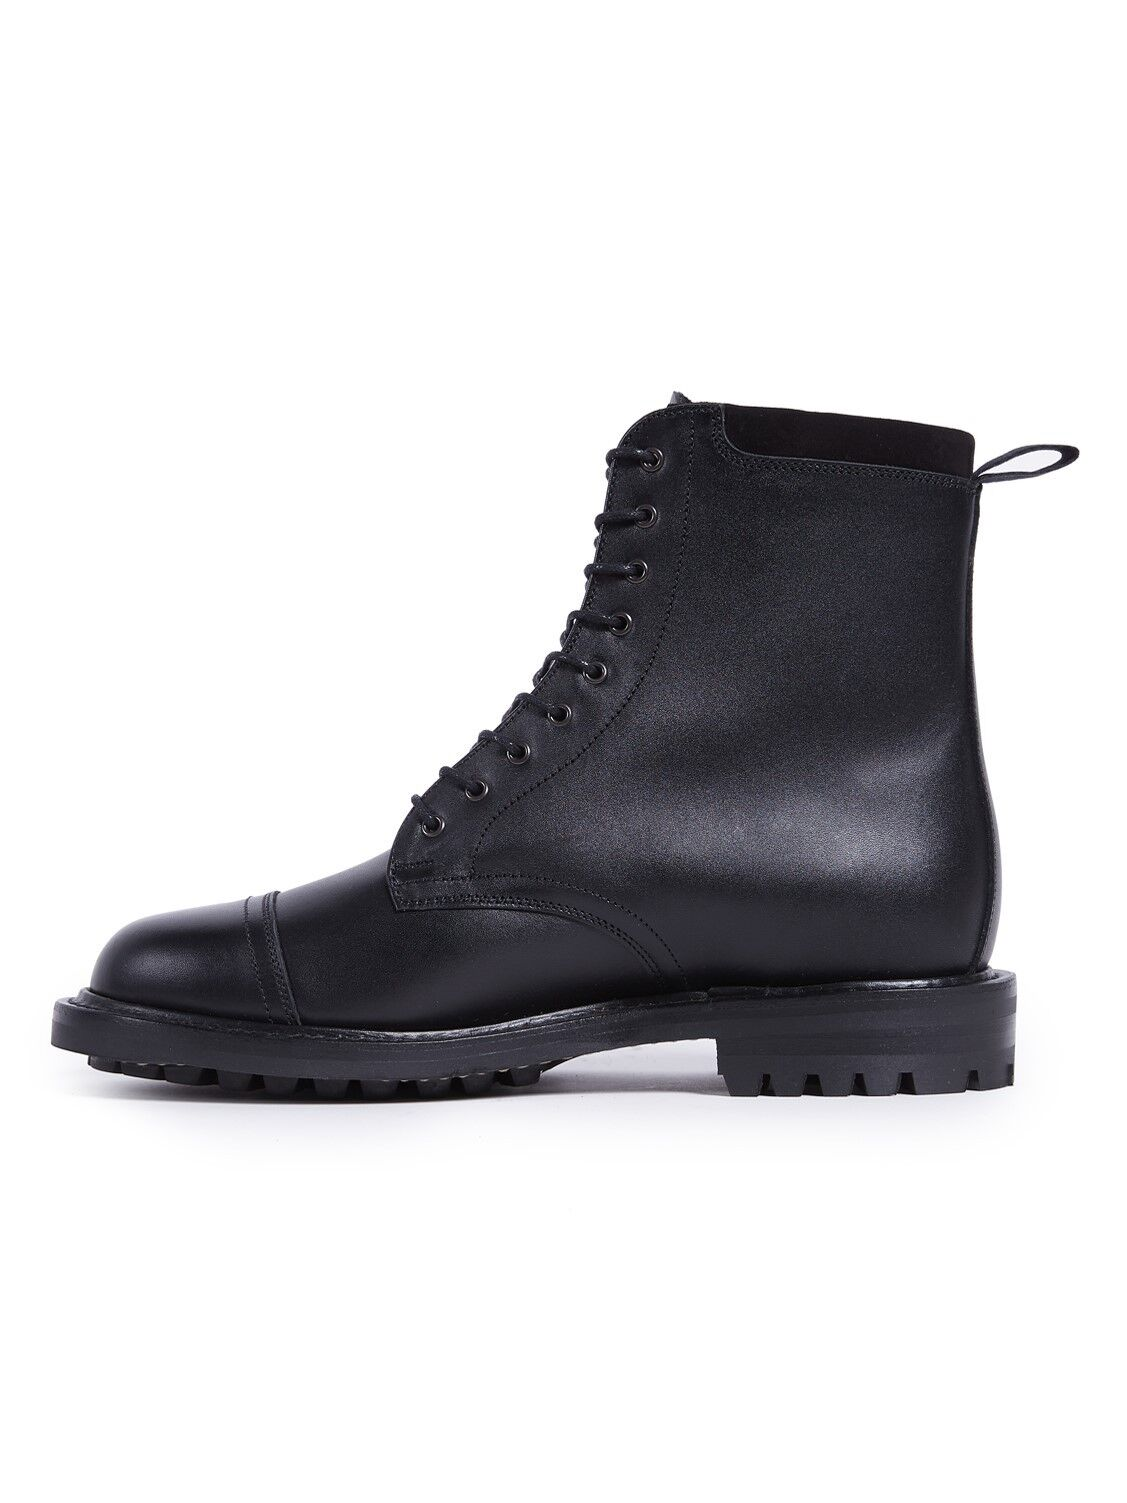 Gentlemen/Ladies Boots Grenson Fred Boots Gentlemen/Ladies Size 10 Best-selling worldwide special promotion Modern mode 21cc15